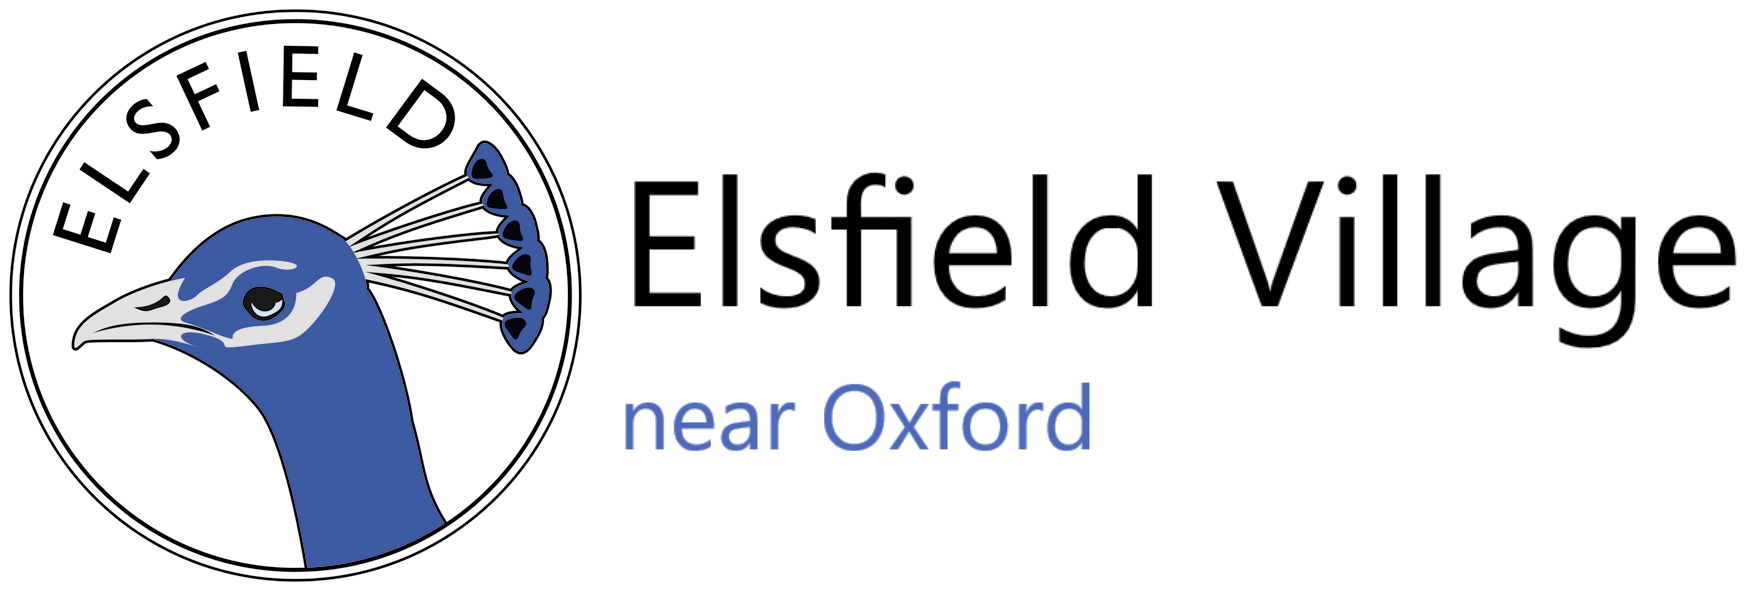 Elsfield Village website